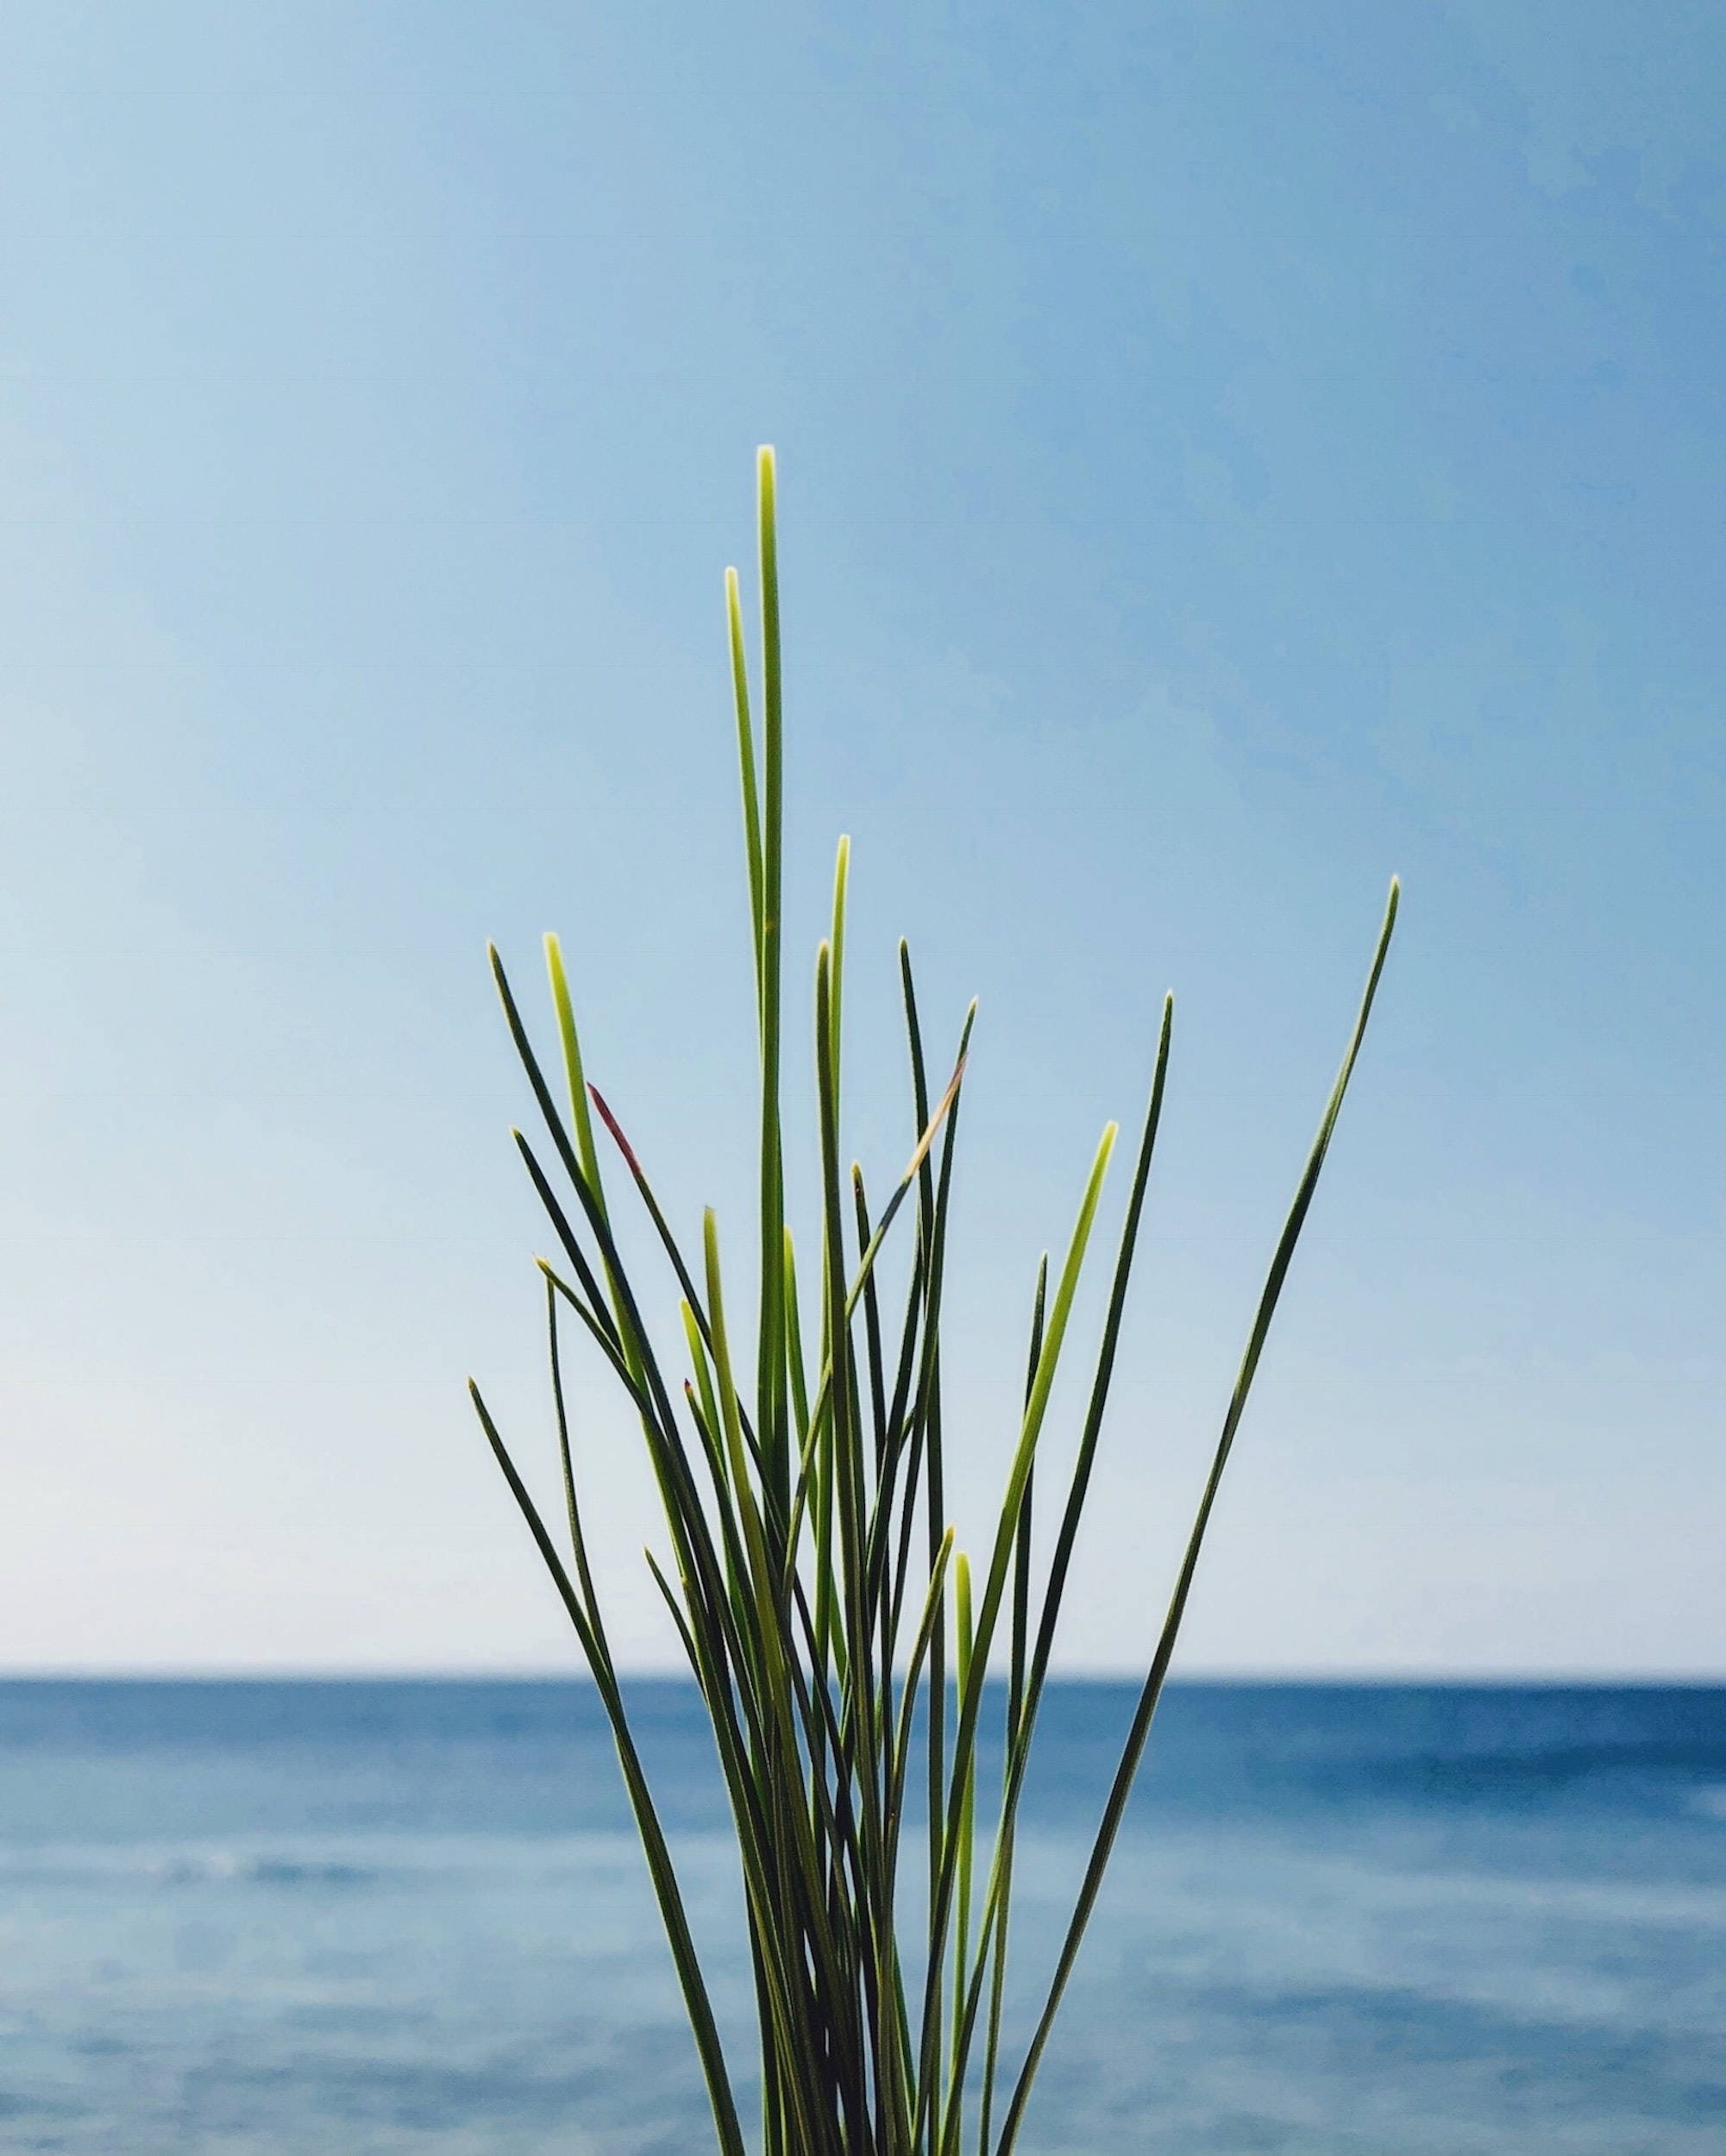 green plant near blue ocean under blue clear sky during daytime